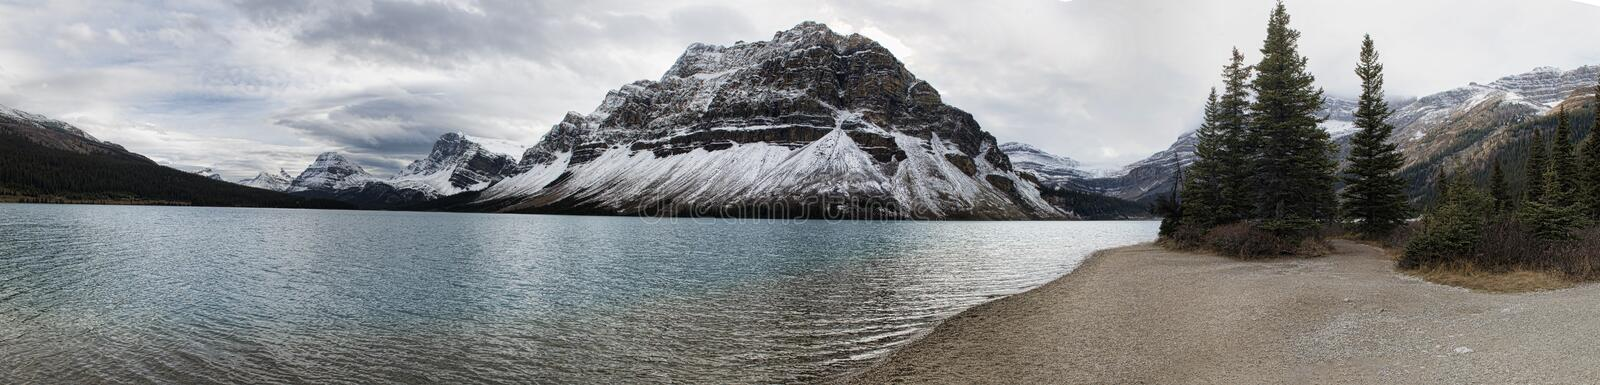 Bow Lake Panoramic. Bow Lake is a small lake in western Alberta, Canada. It is located on the Bow River, in the Canadian Rockies, at an altitude of 1920 m stock photo